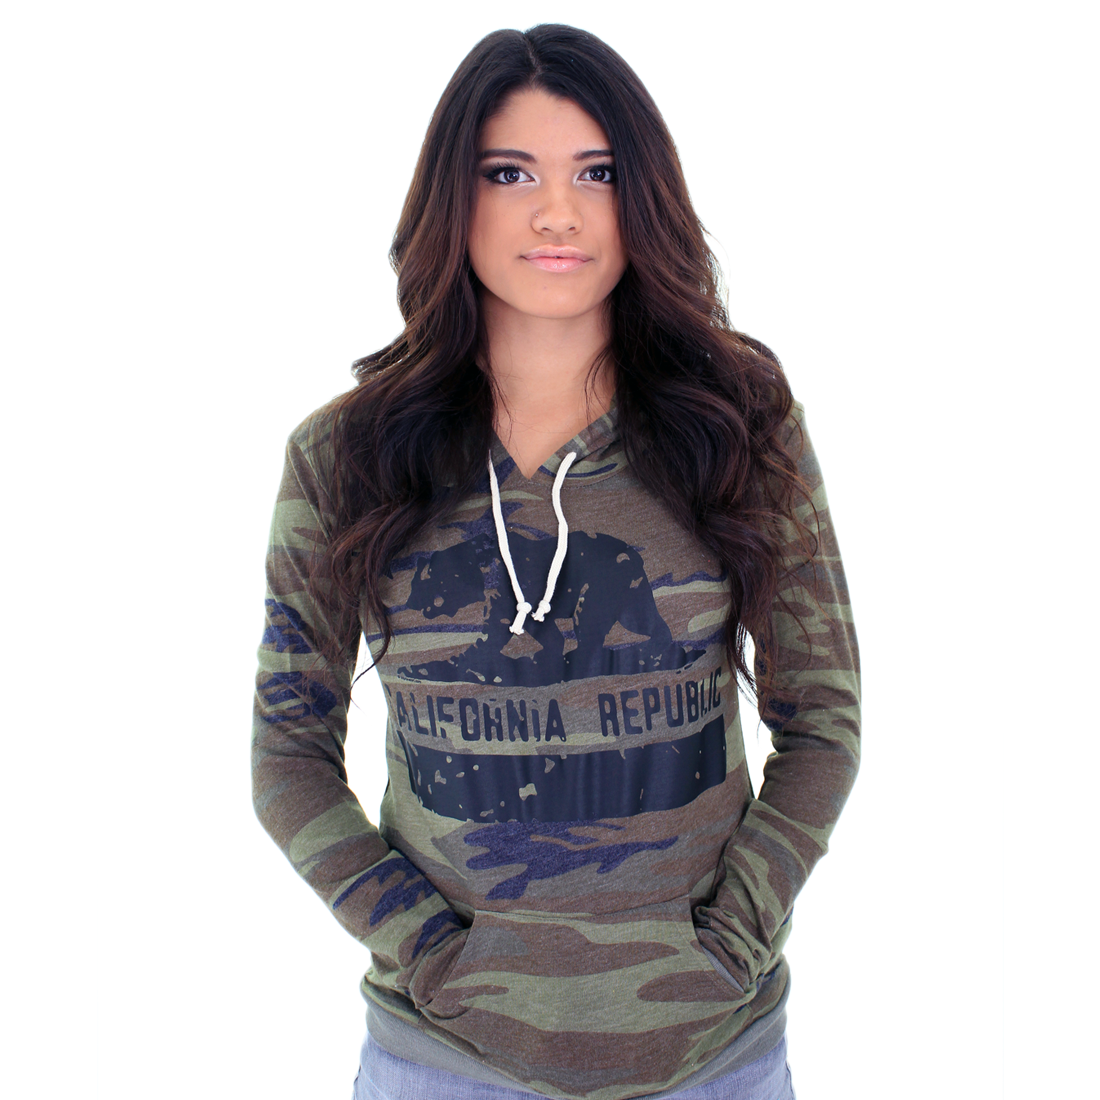 California Republic Eco Pullover Hooded Long Sleeve T-shirt - State Flag Bear Silhouette